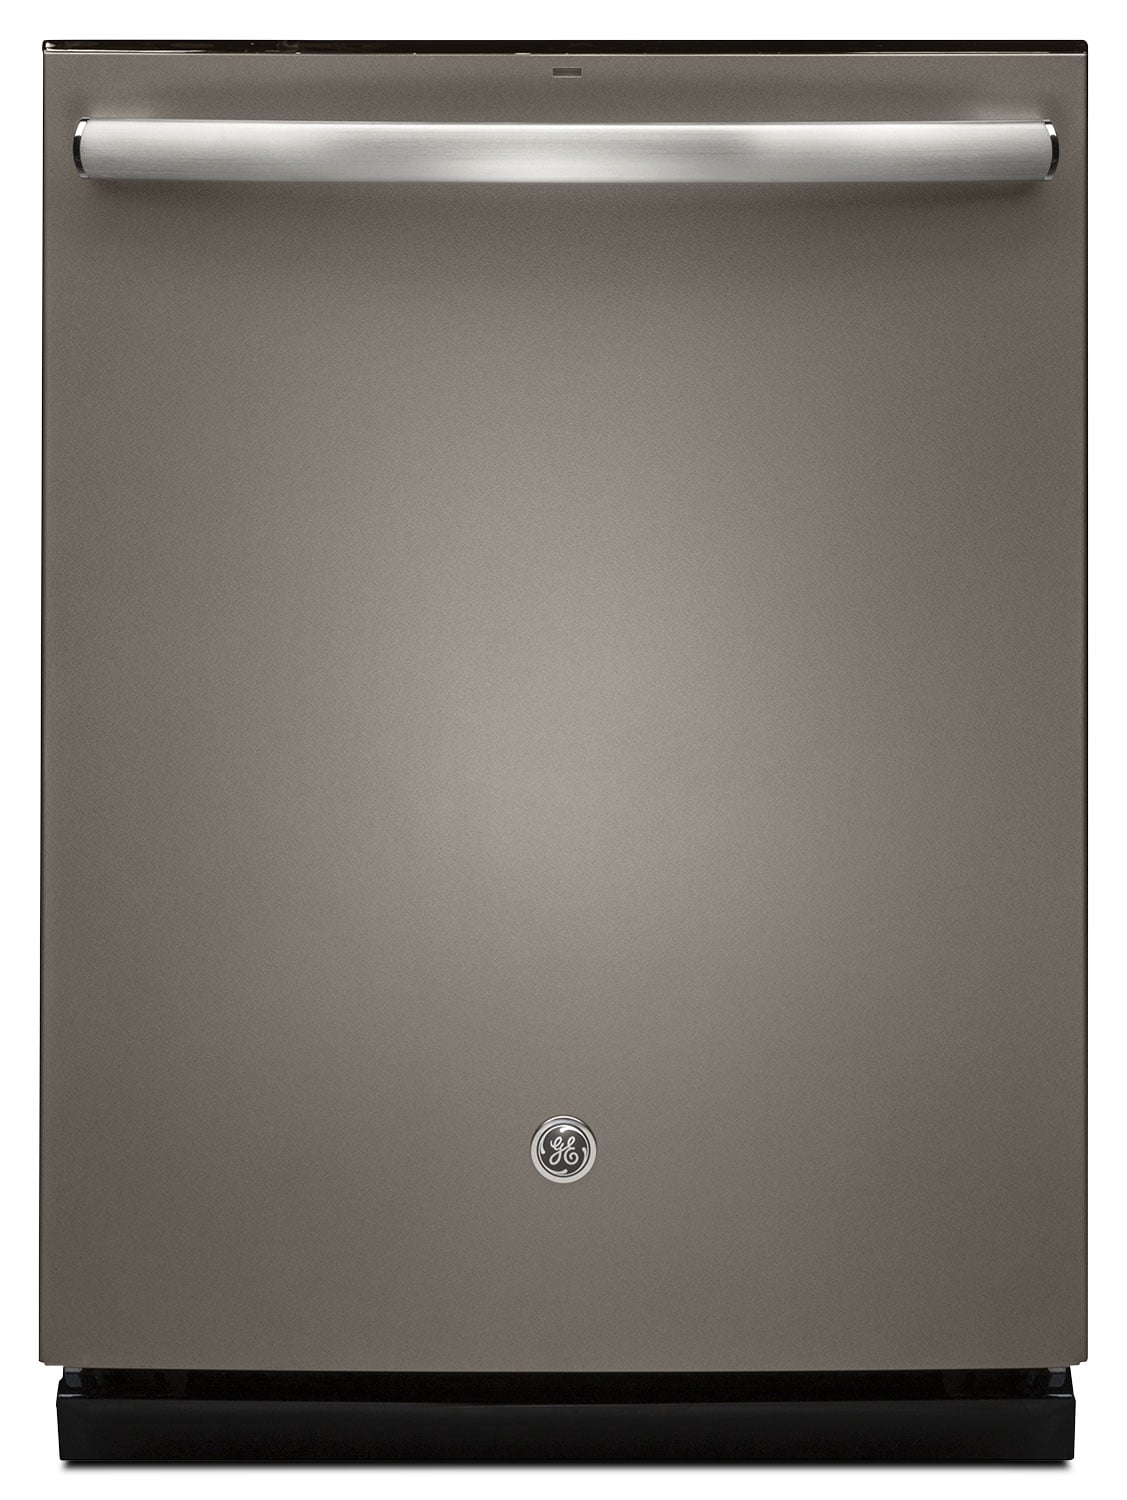 Clean-Up - GE Tall-Tub Built-In Dishwasher – GDT655SMJES